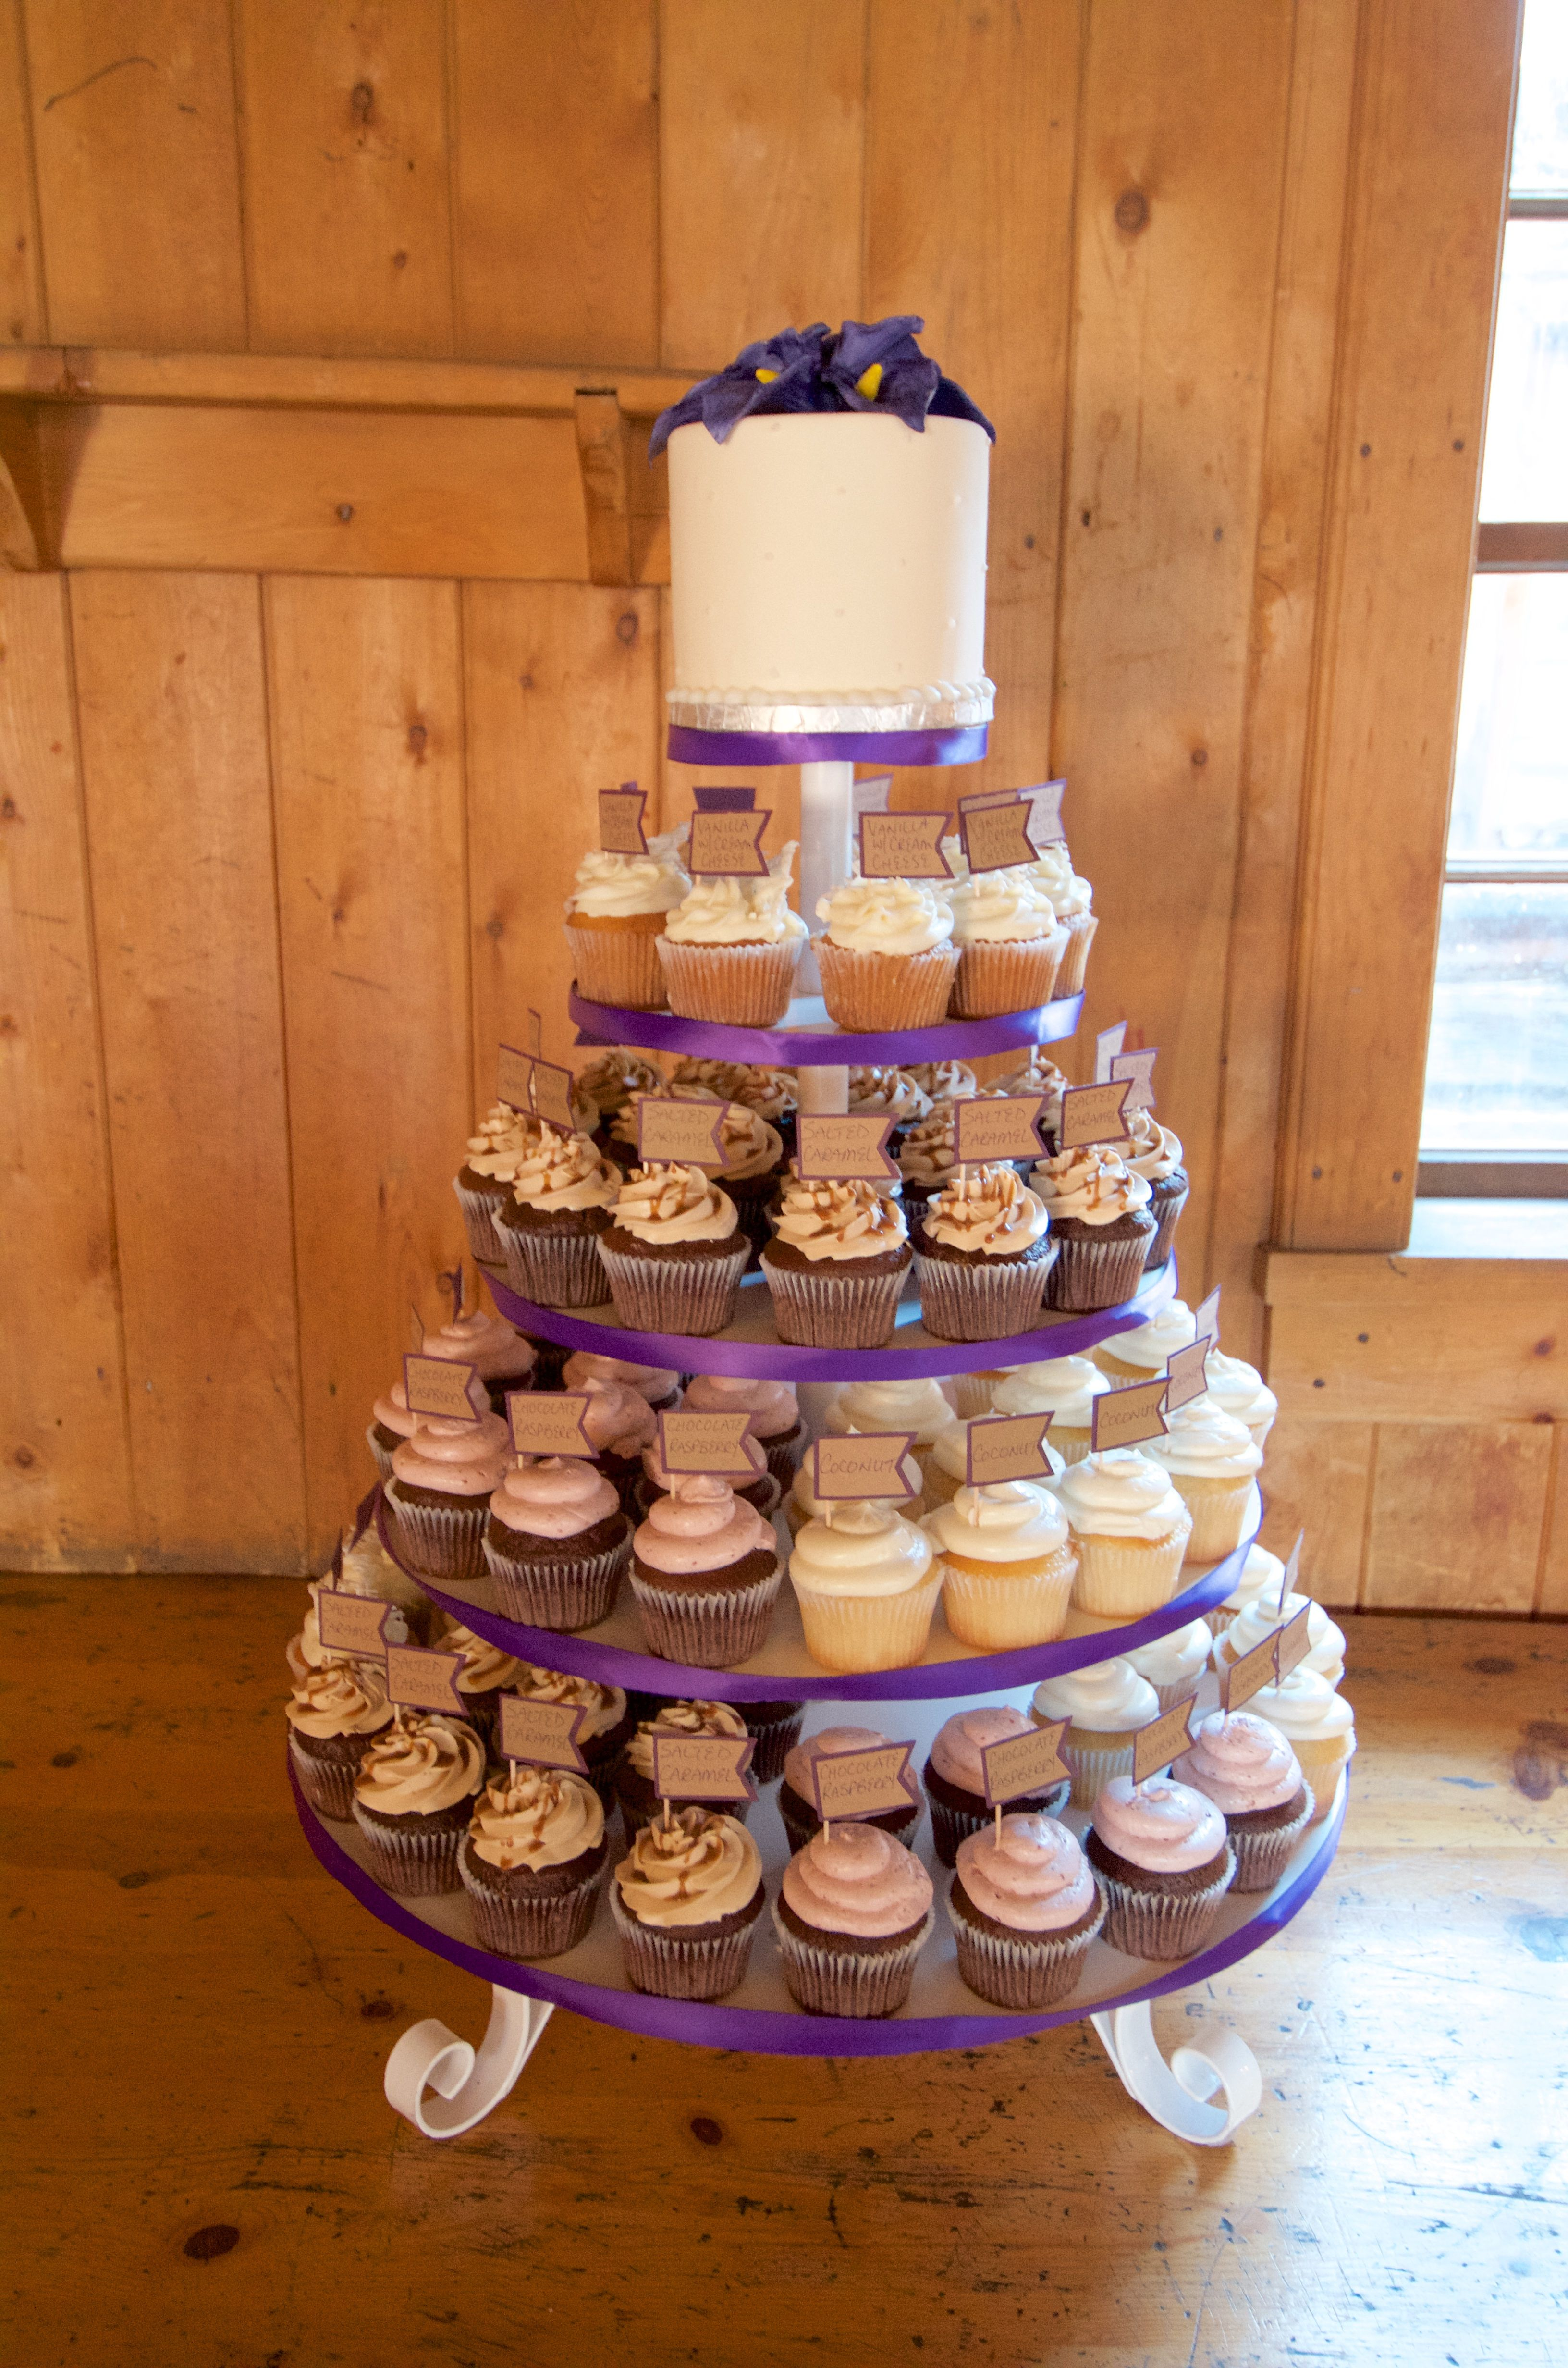 Plane Jane Buttercream Cake Topper With Purple Ribbon On A Wedding Cupcake Stand